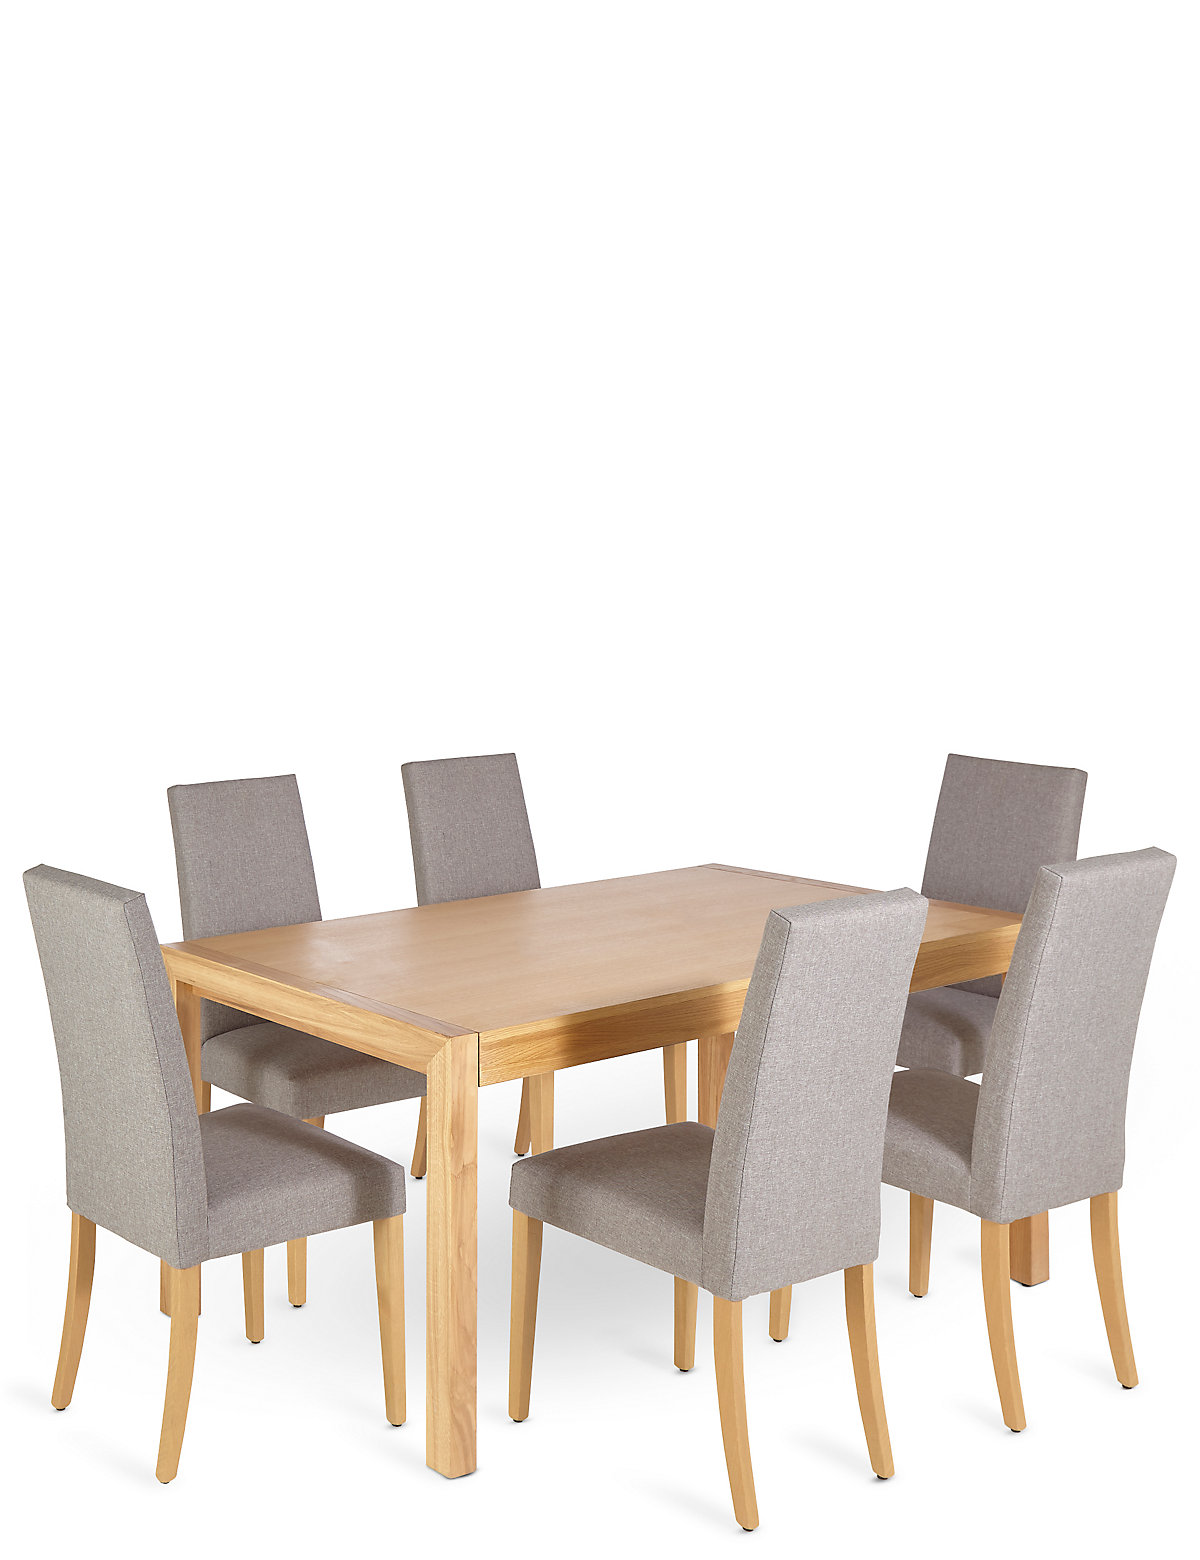 Quick Look GBP799 For A Dining Table 6 Chairs Bundle